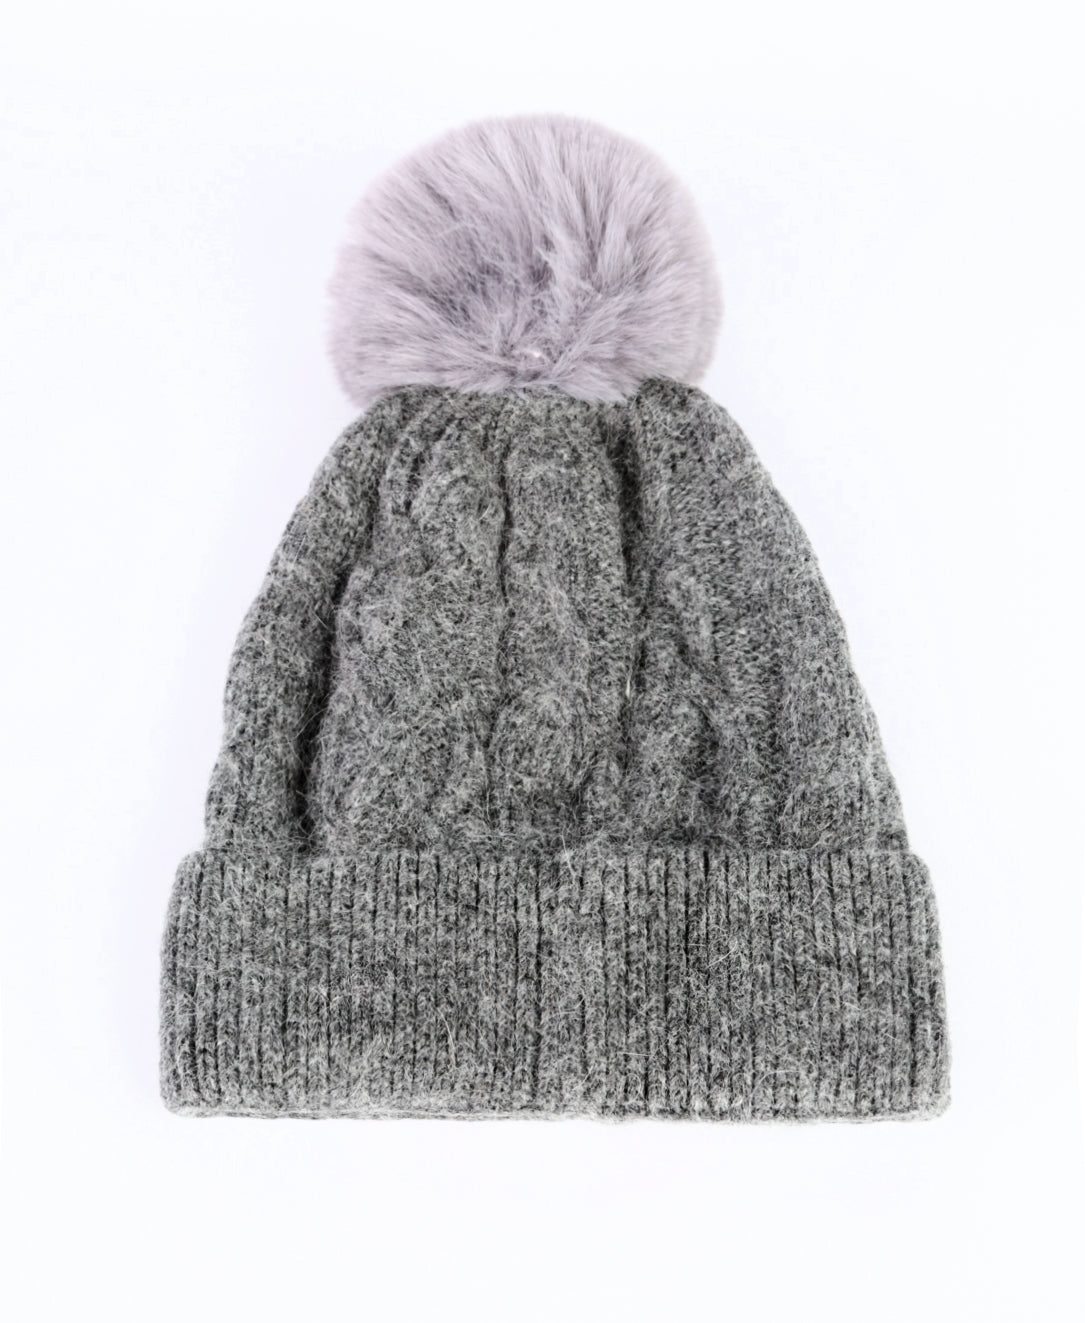 ANYA - Cashmere Bobble Hat - Grey